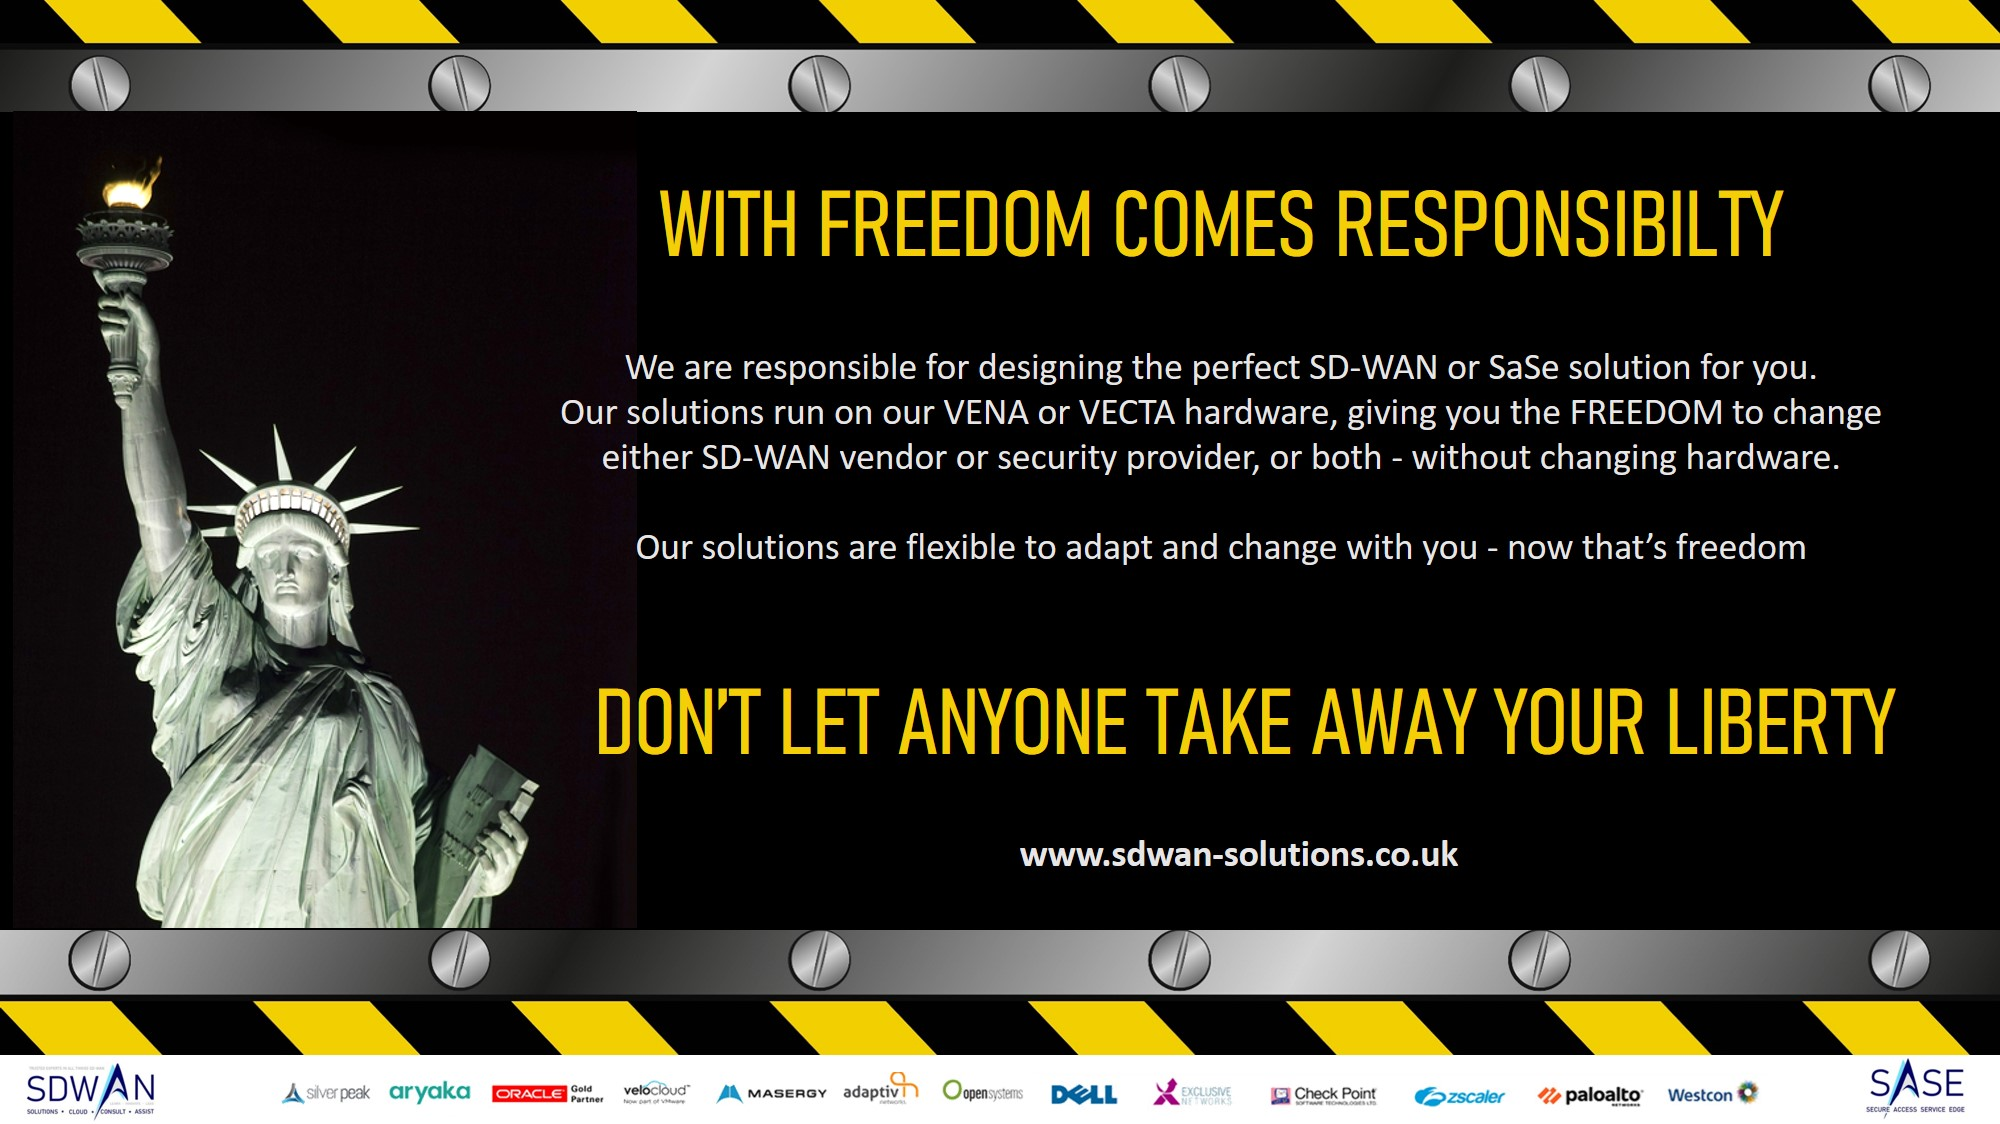 Choice of SD-WAN or SaSe solution design, freedom to choose